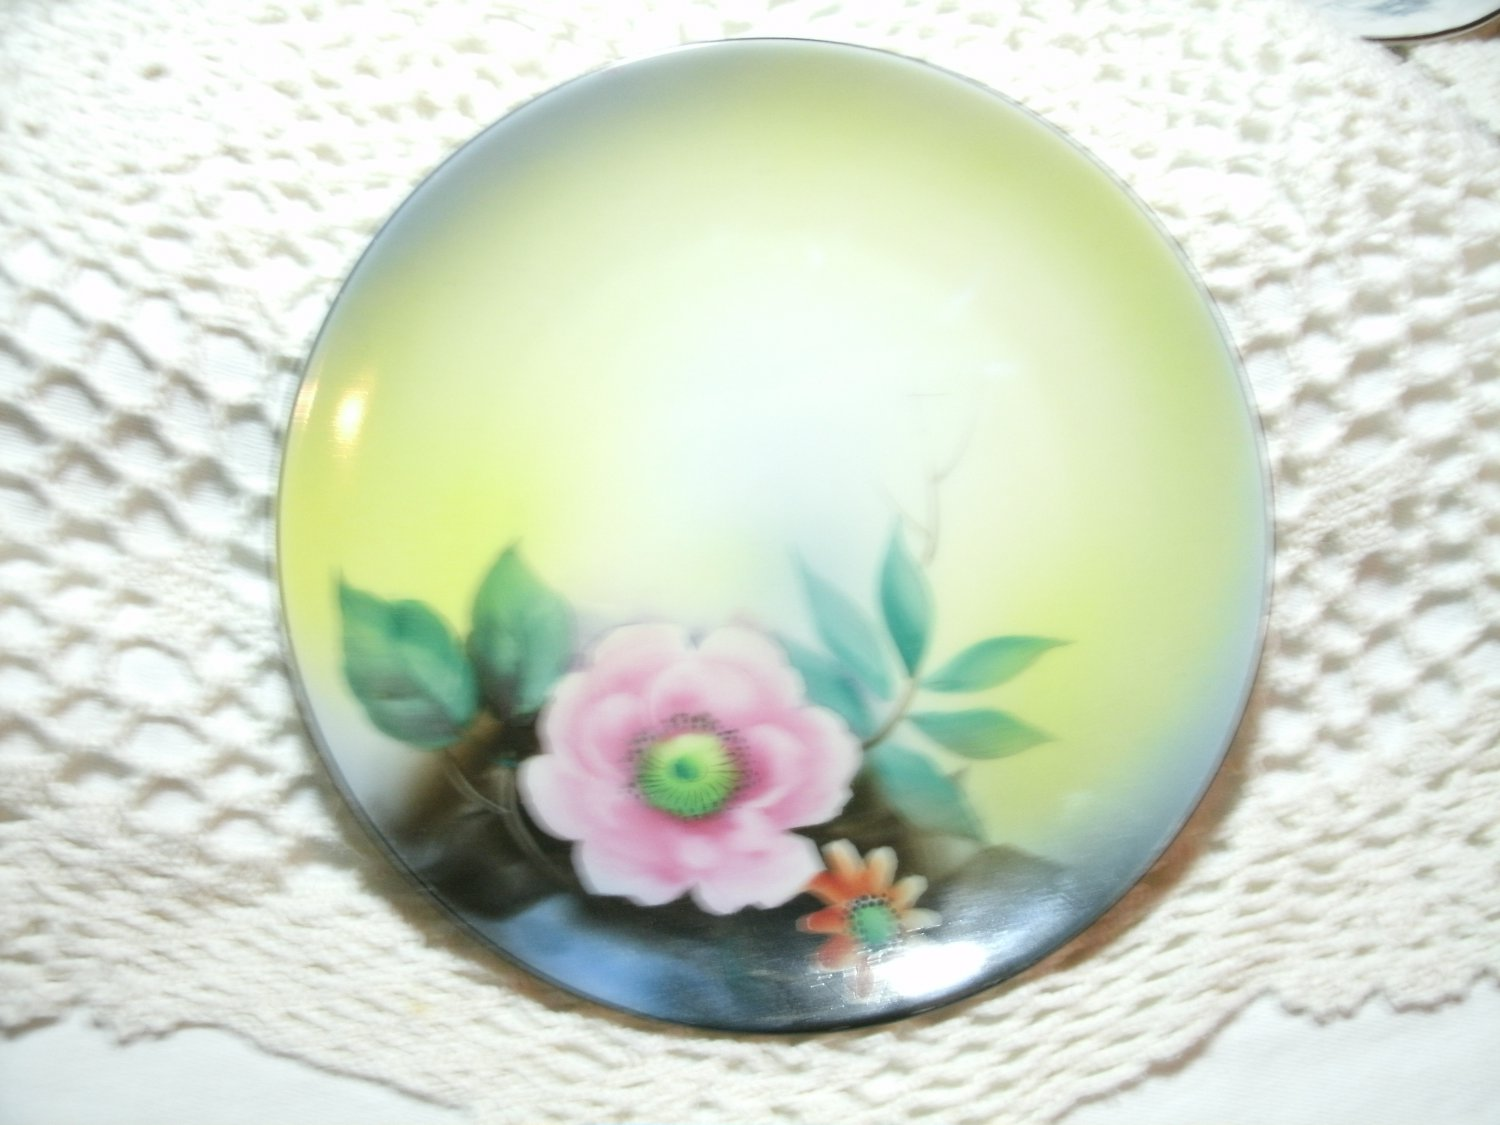 Noritake Morimura Hand Painted Floral Plate 6 1/4 Inches 1920's Vintage